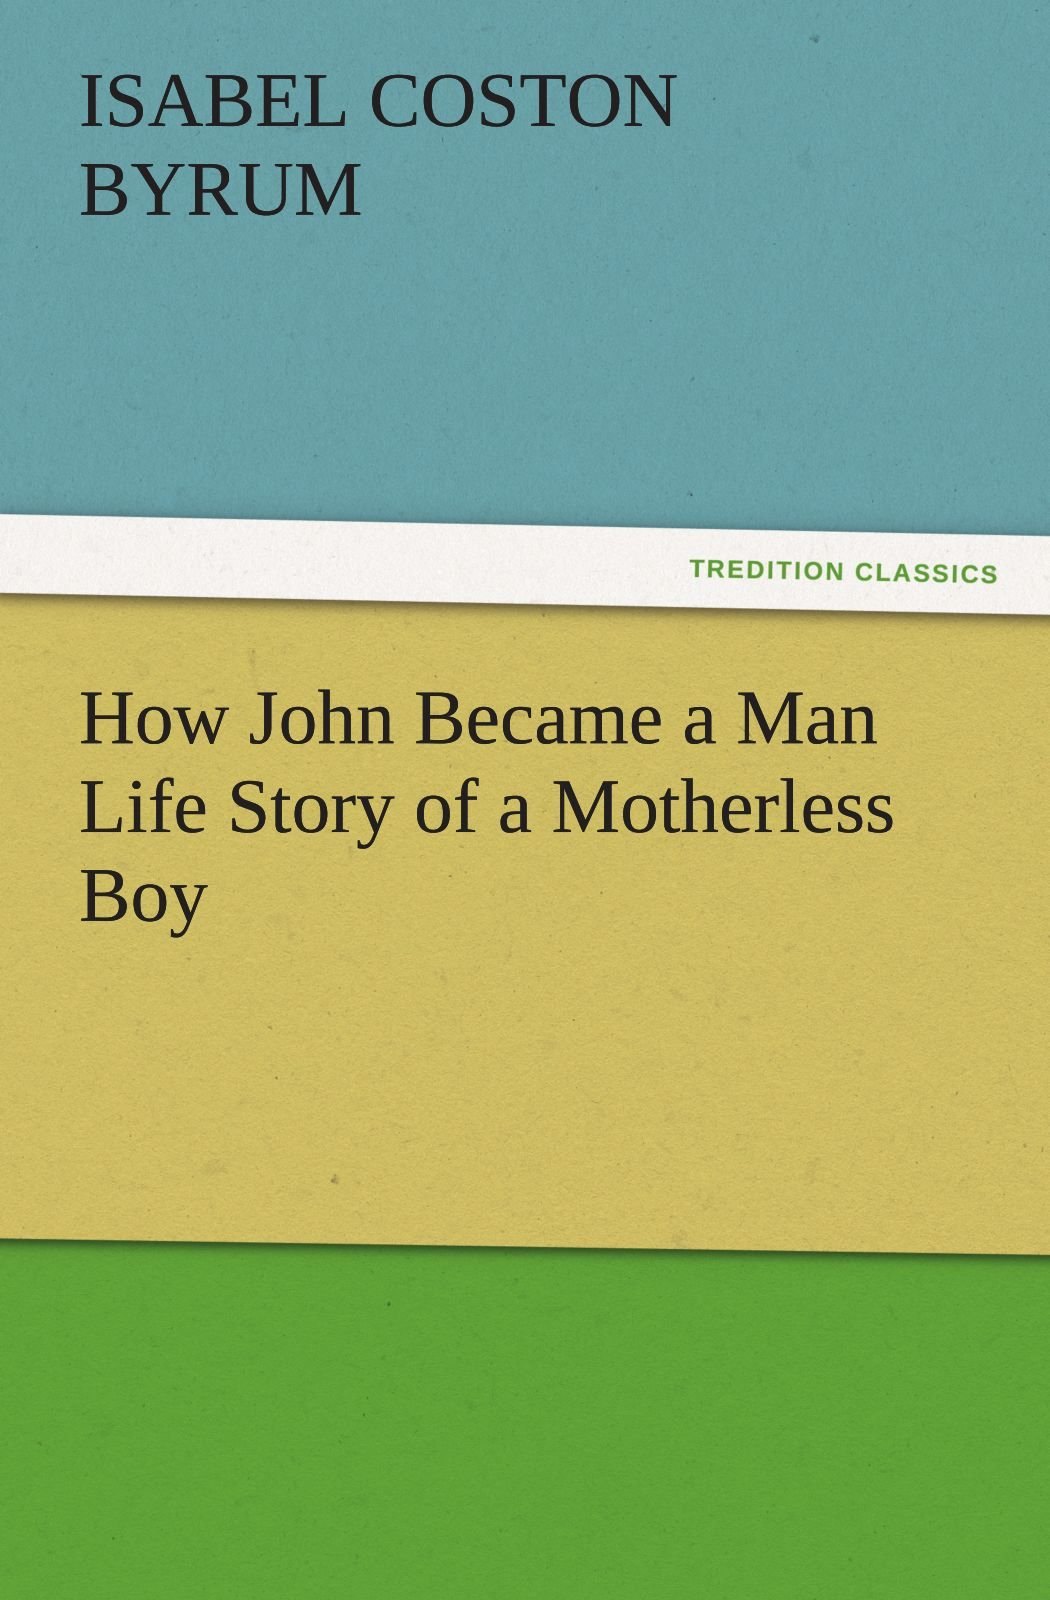 Download How John Became a Man Life Story of a Motherless Boy (TREDITION CLASSICS) pdf